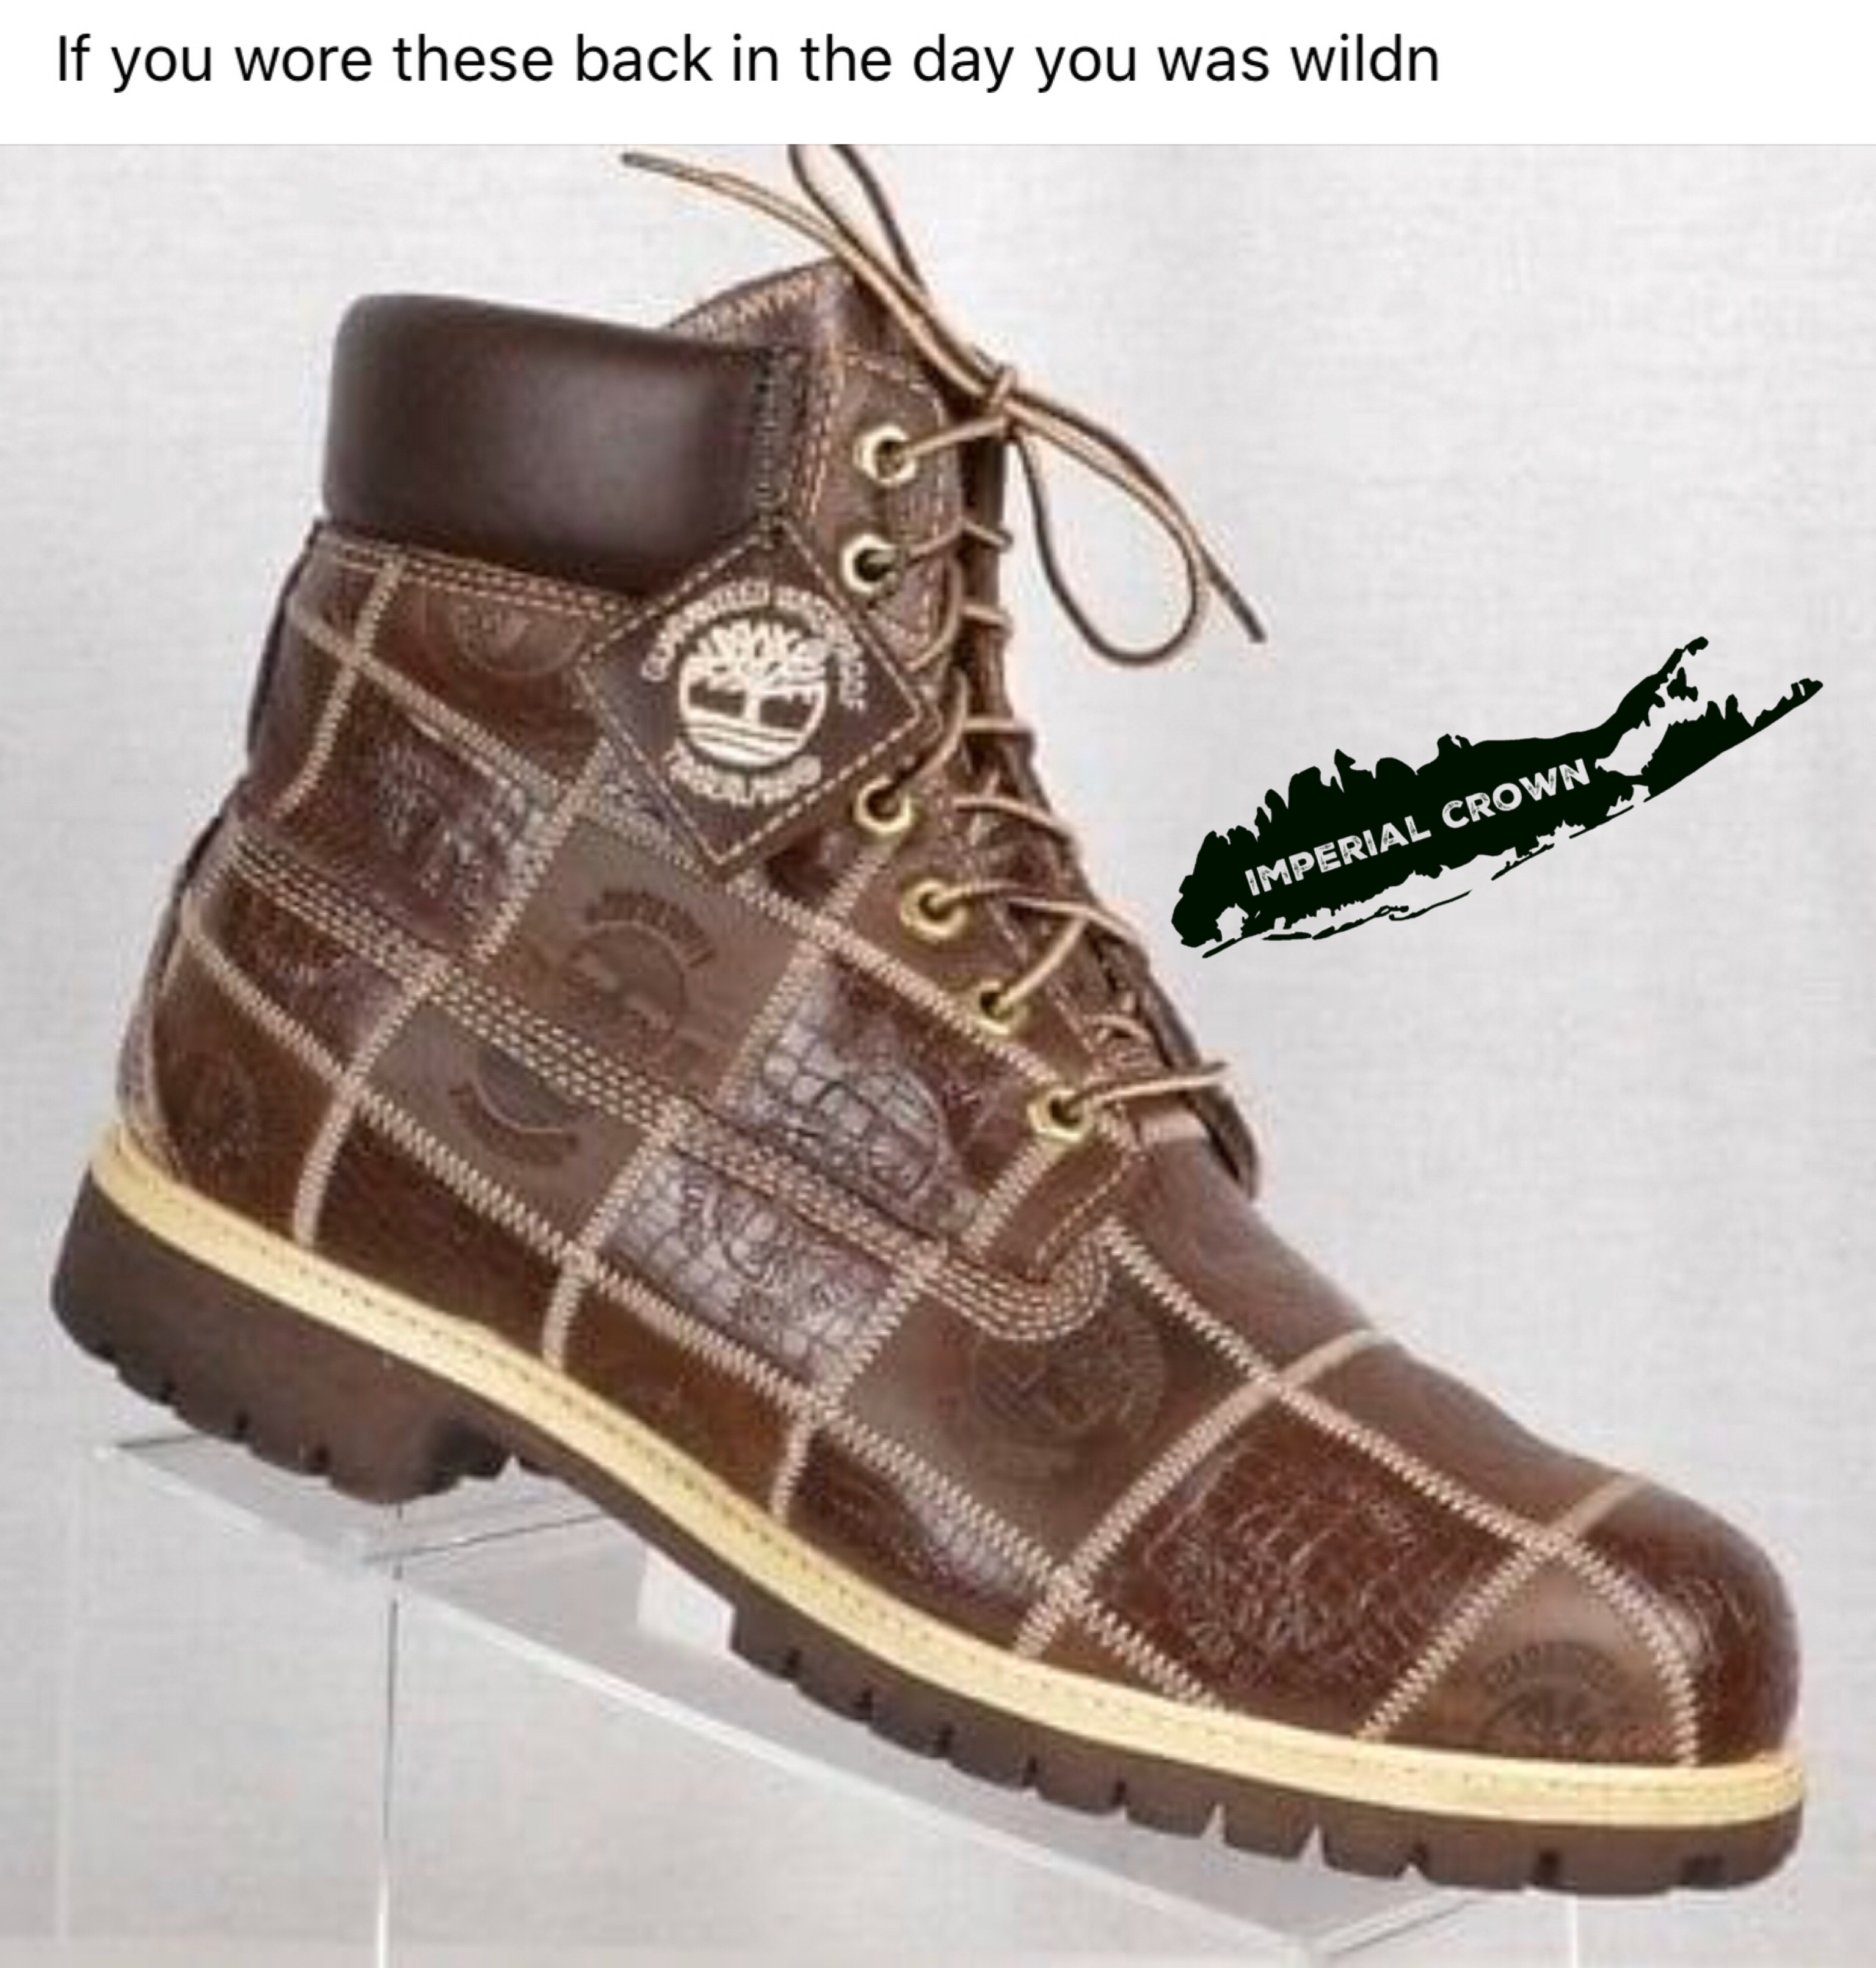 If you wore these back in the day you wildn